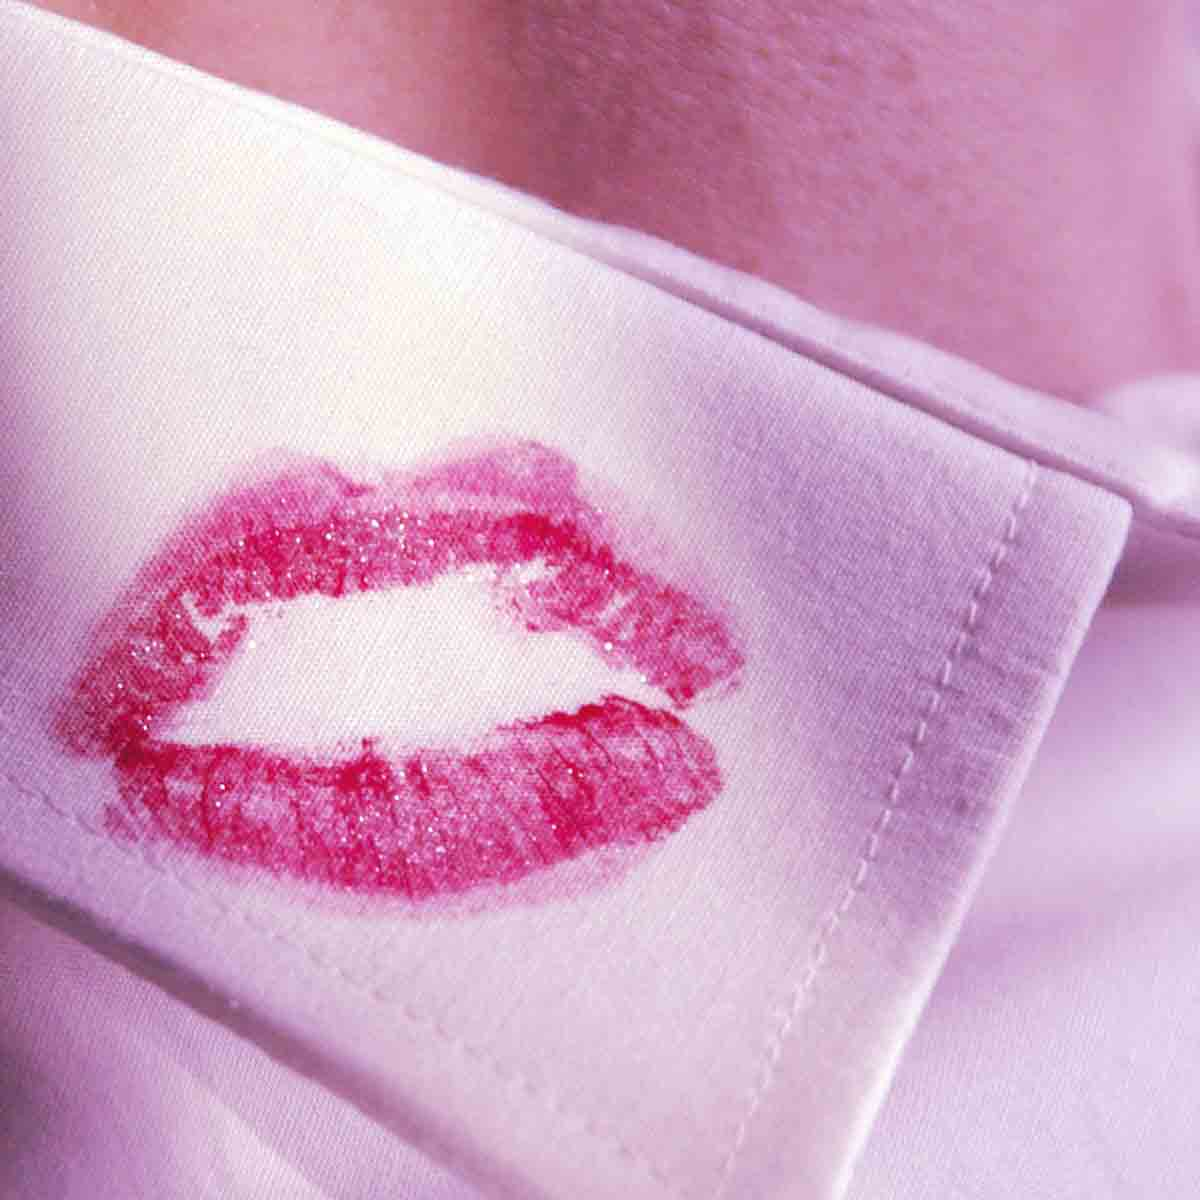 red kiss on mans white shirt collar